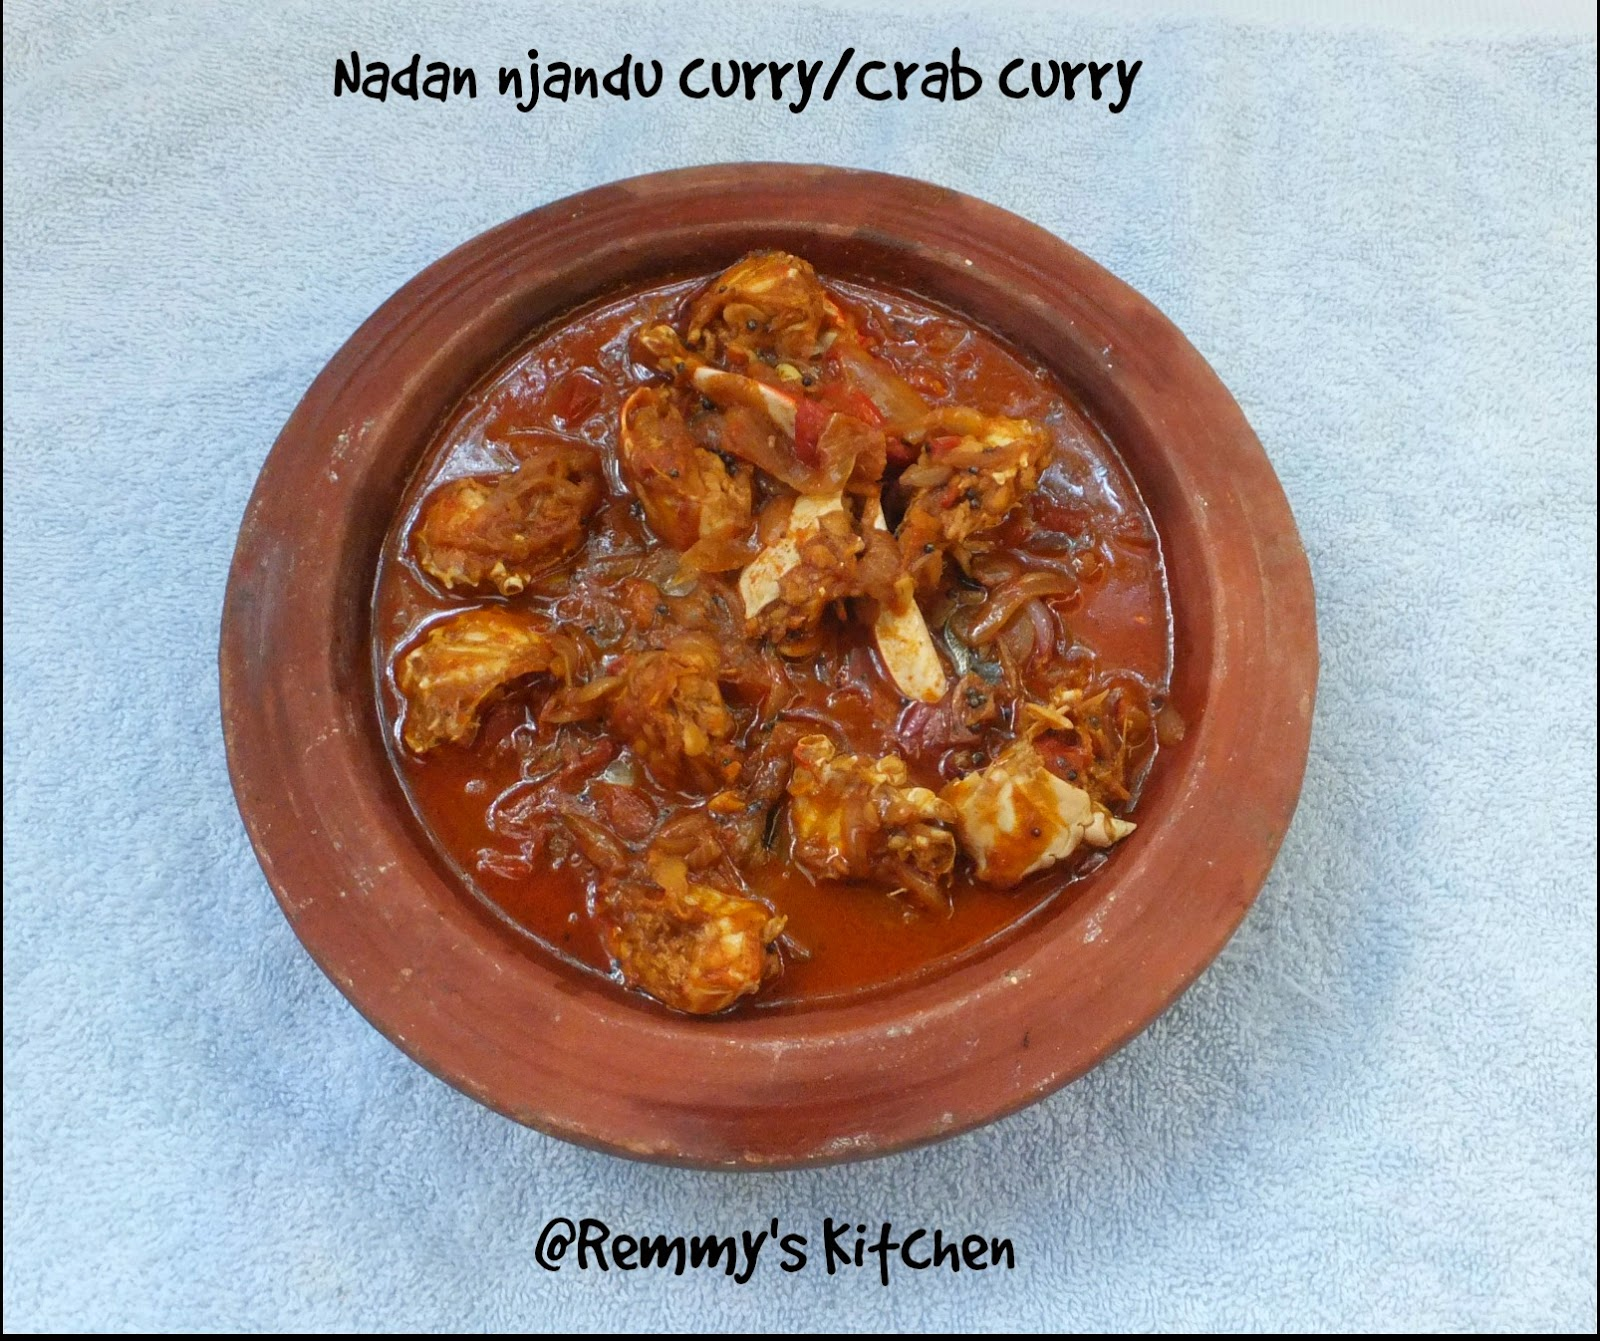 Nadan Njandu curry/Kerala Crab curry